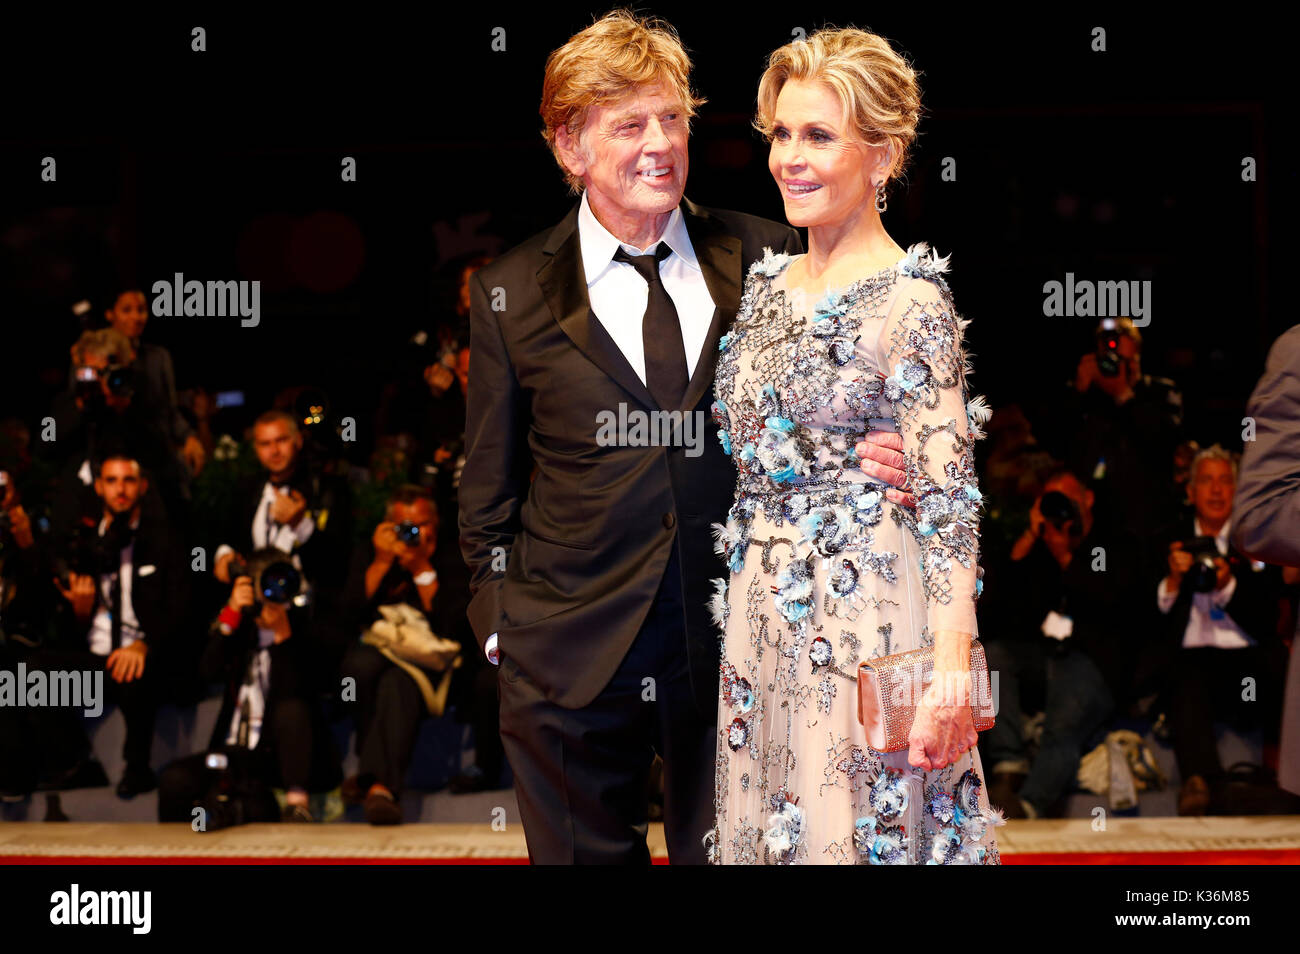 Robert Redford and Jane Fonda attending the 'Our Souls at Night' premiere at the 74th Venice International - Stock Image